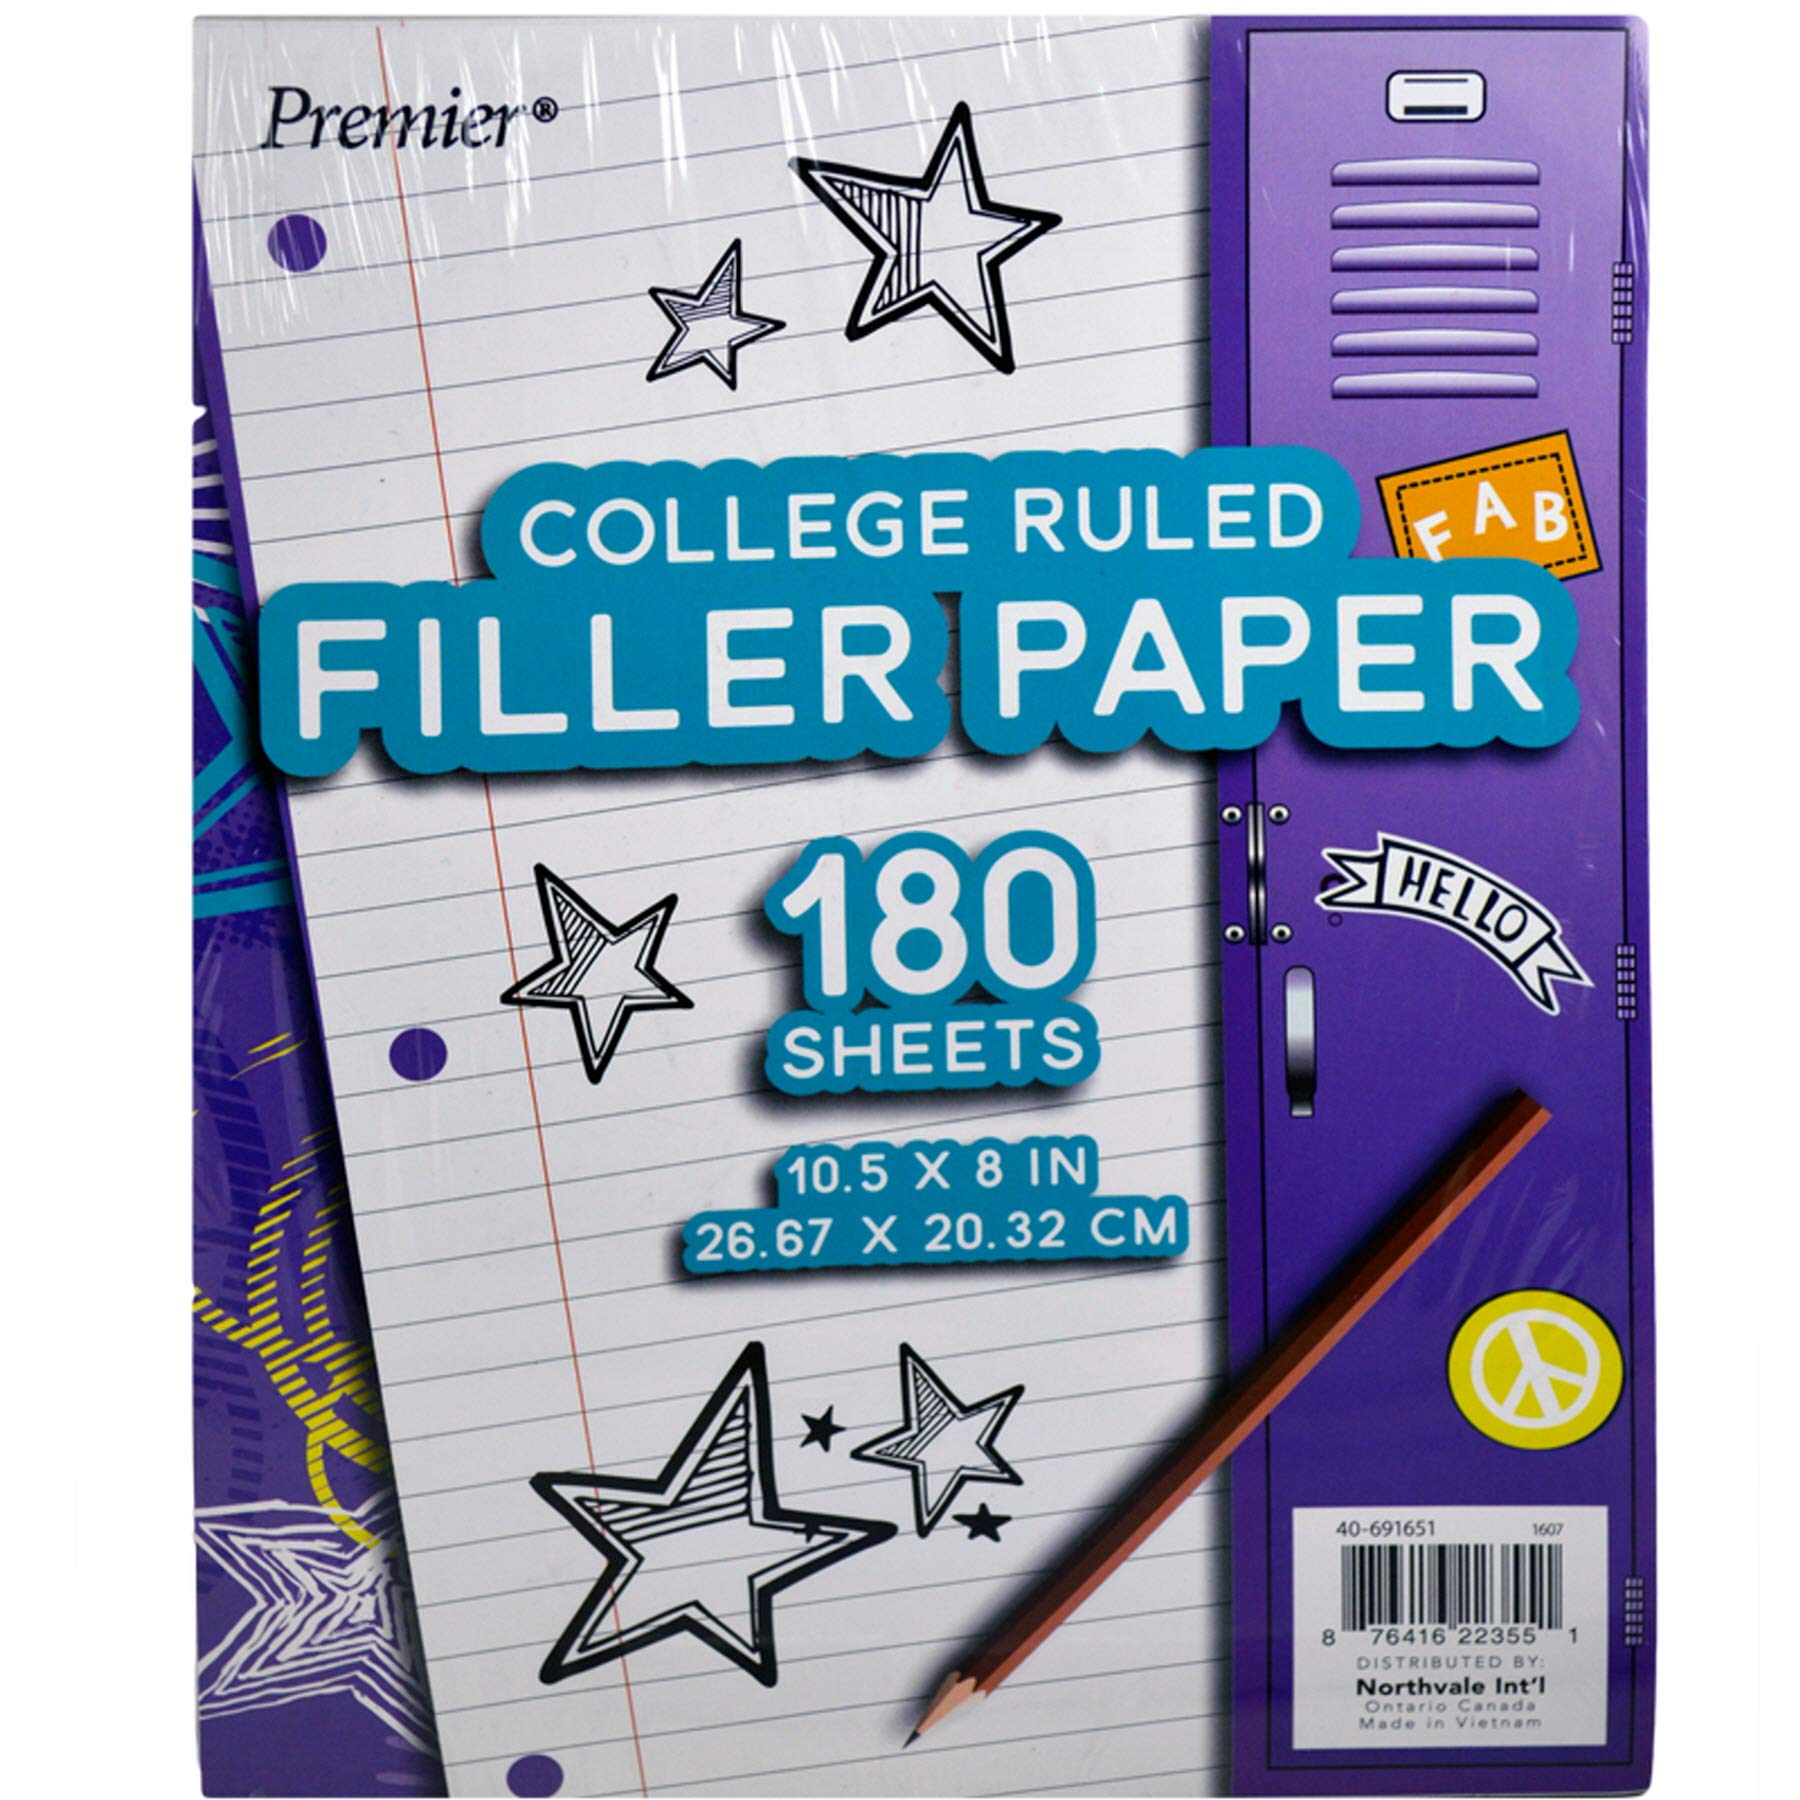 (Pack of 24, 4320 Ct) Premier Filler Paper College Ruled, 180ct by Unknown (Image #1)